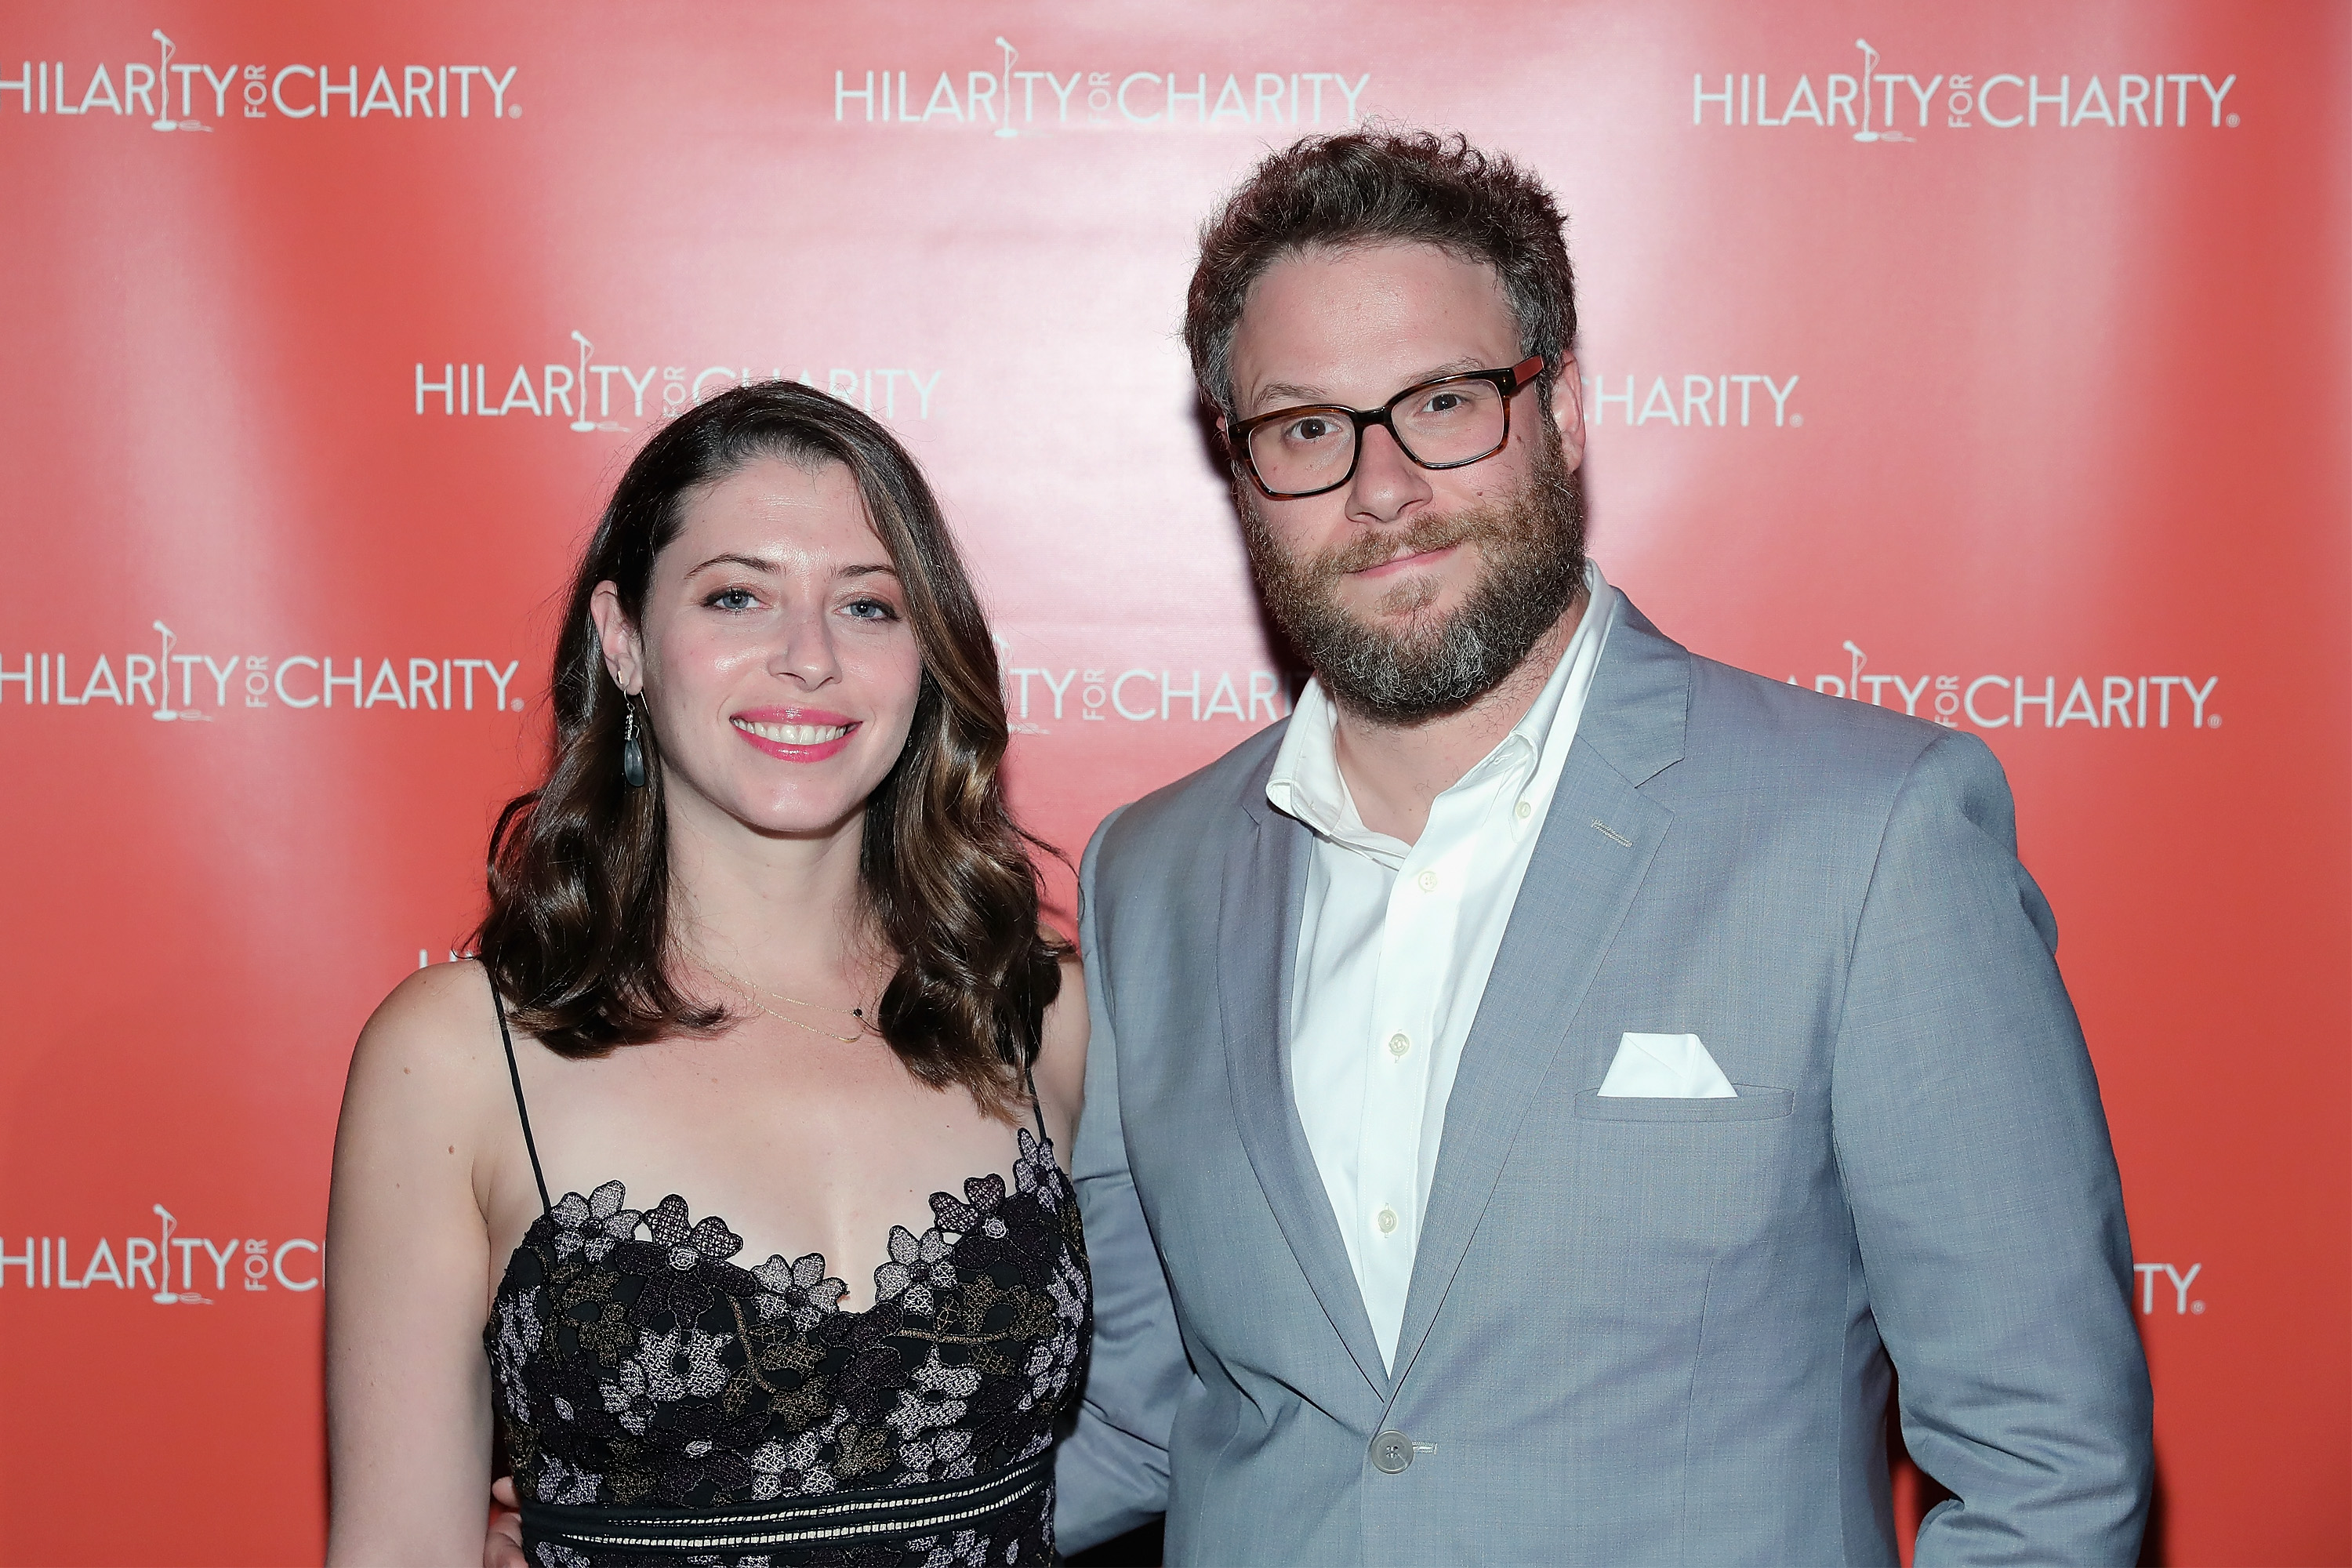 Actors Lauren Miller (L) and Seth Rogen attend HFC NYC presented by Hilarity for Charity at Highline Ballroom on June 29, 2016 in New York City.